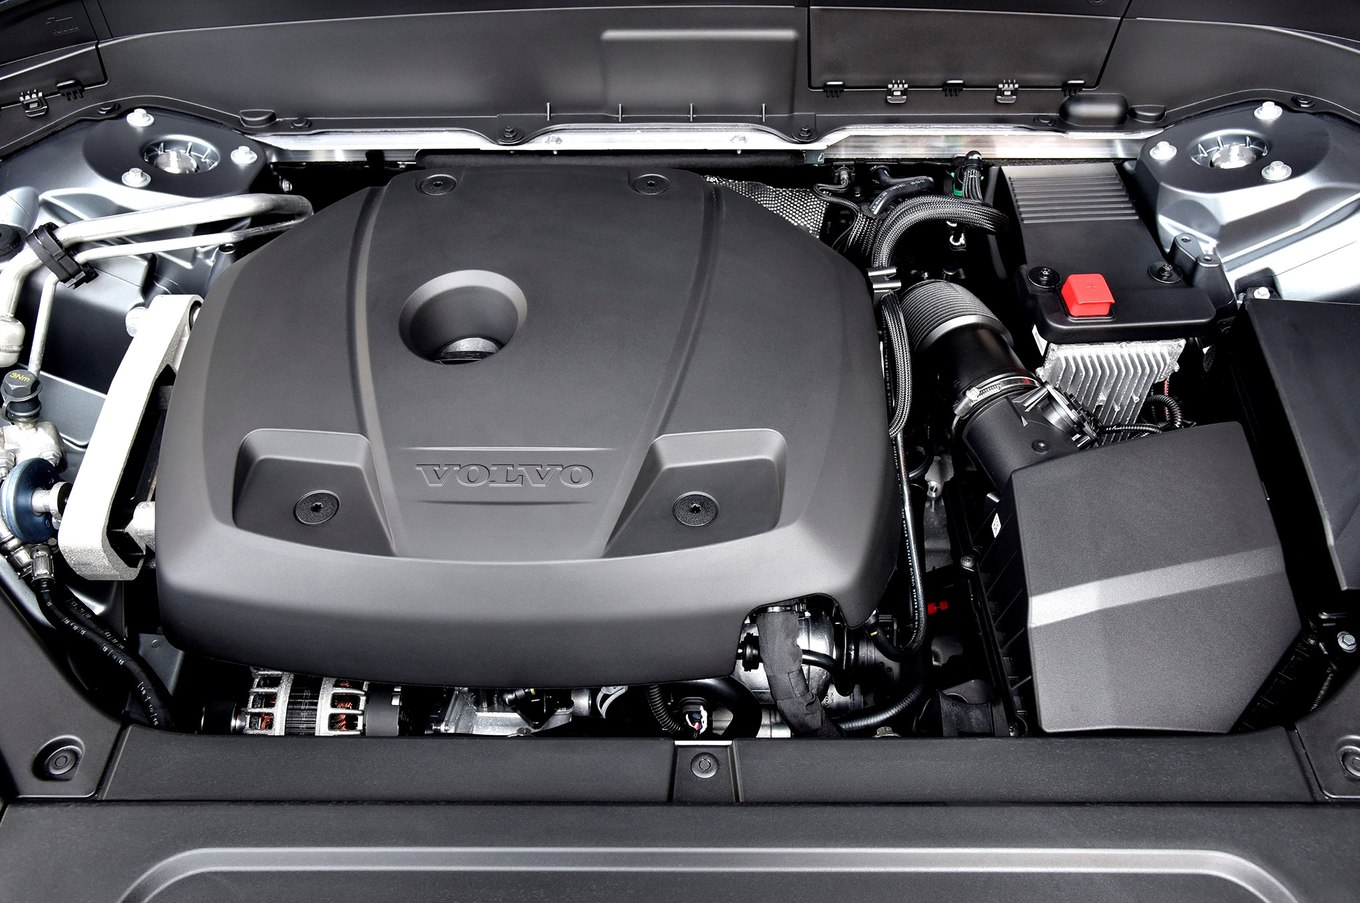 Volvo engine photo - 9